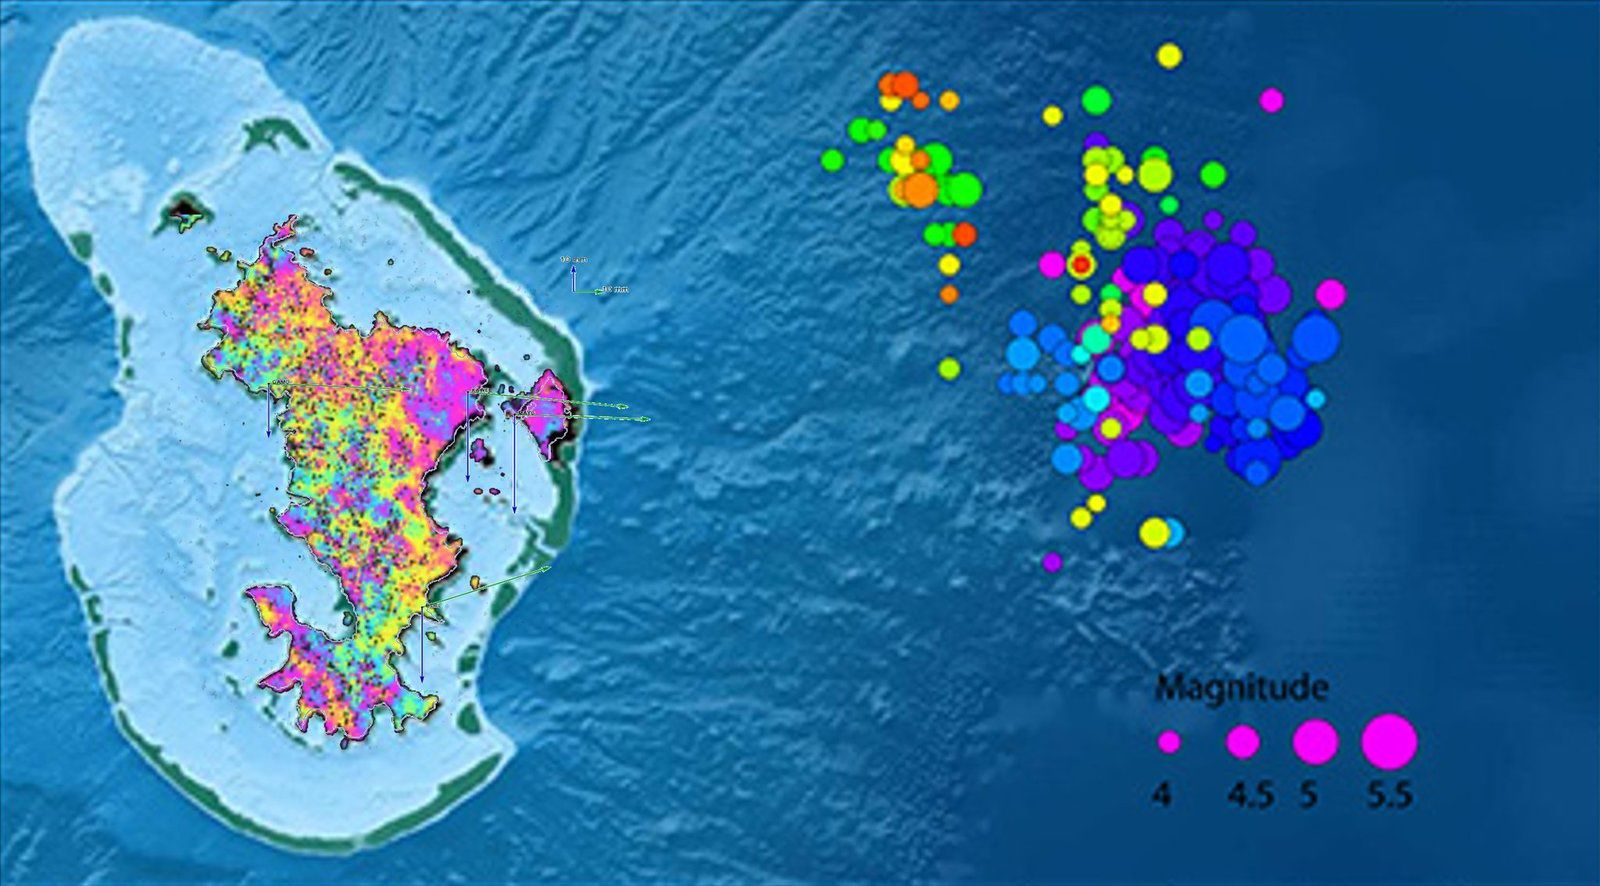 Mayotte - The seismic swarm, data InSAR, displacement - Doc. Matarikipax / Twitter - one click to enlarge